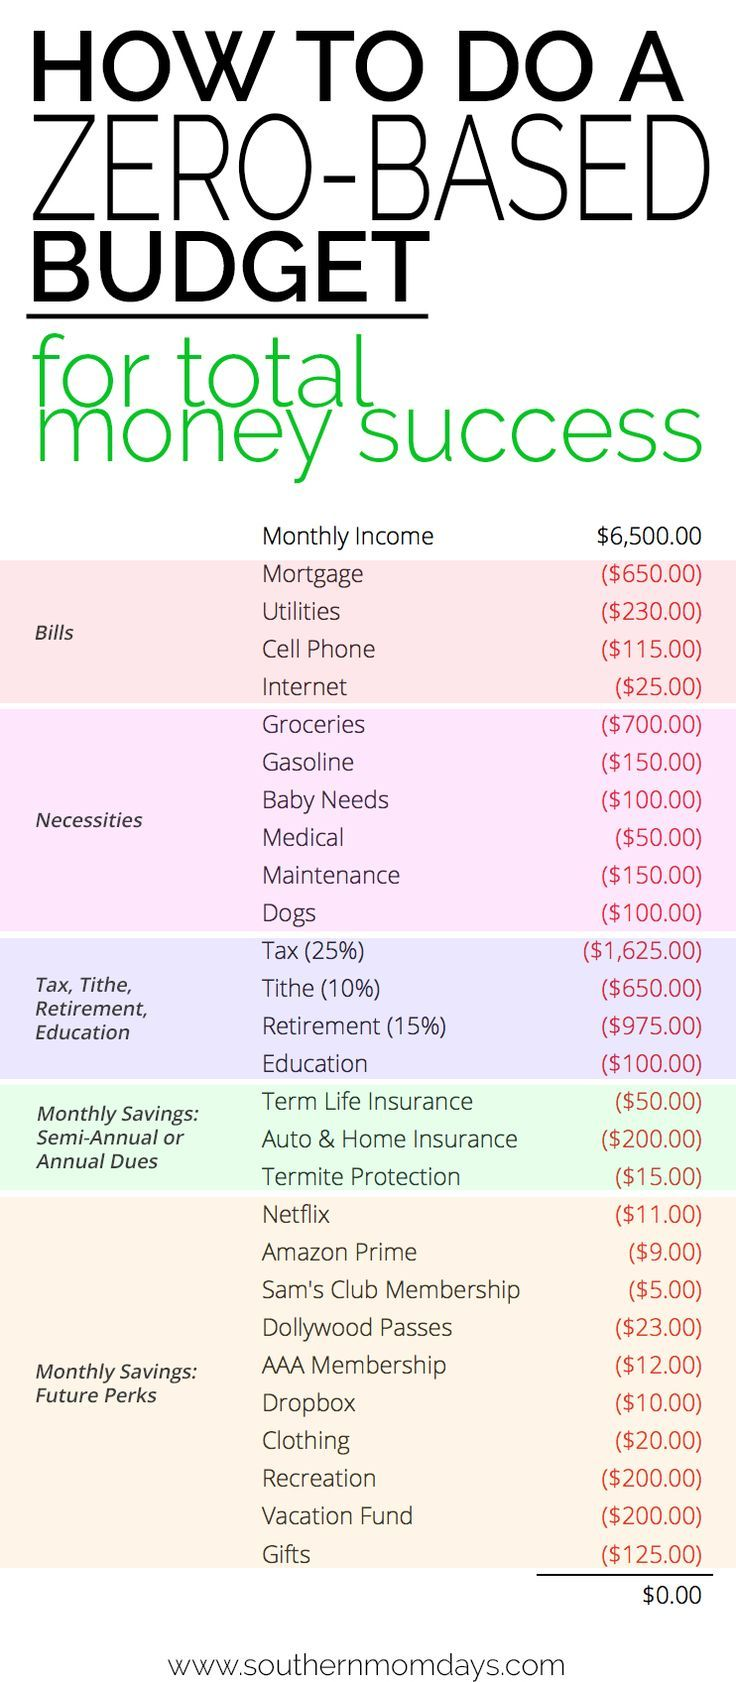 There are different types of annuities readily available